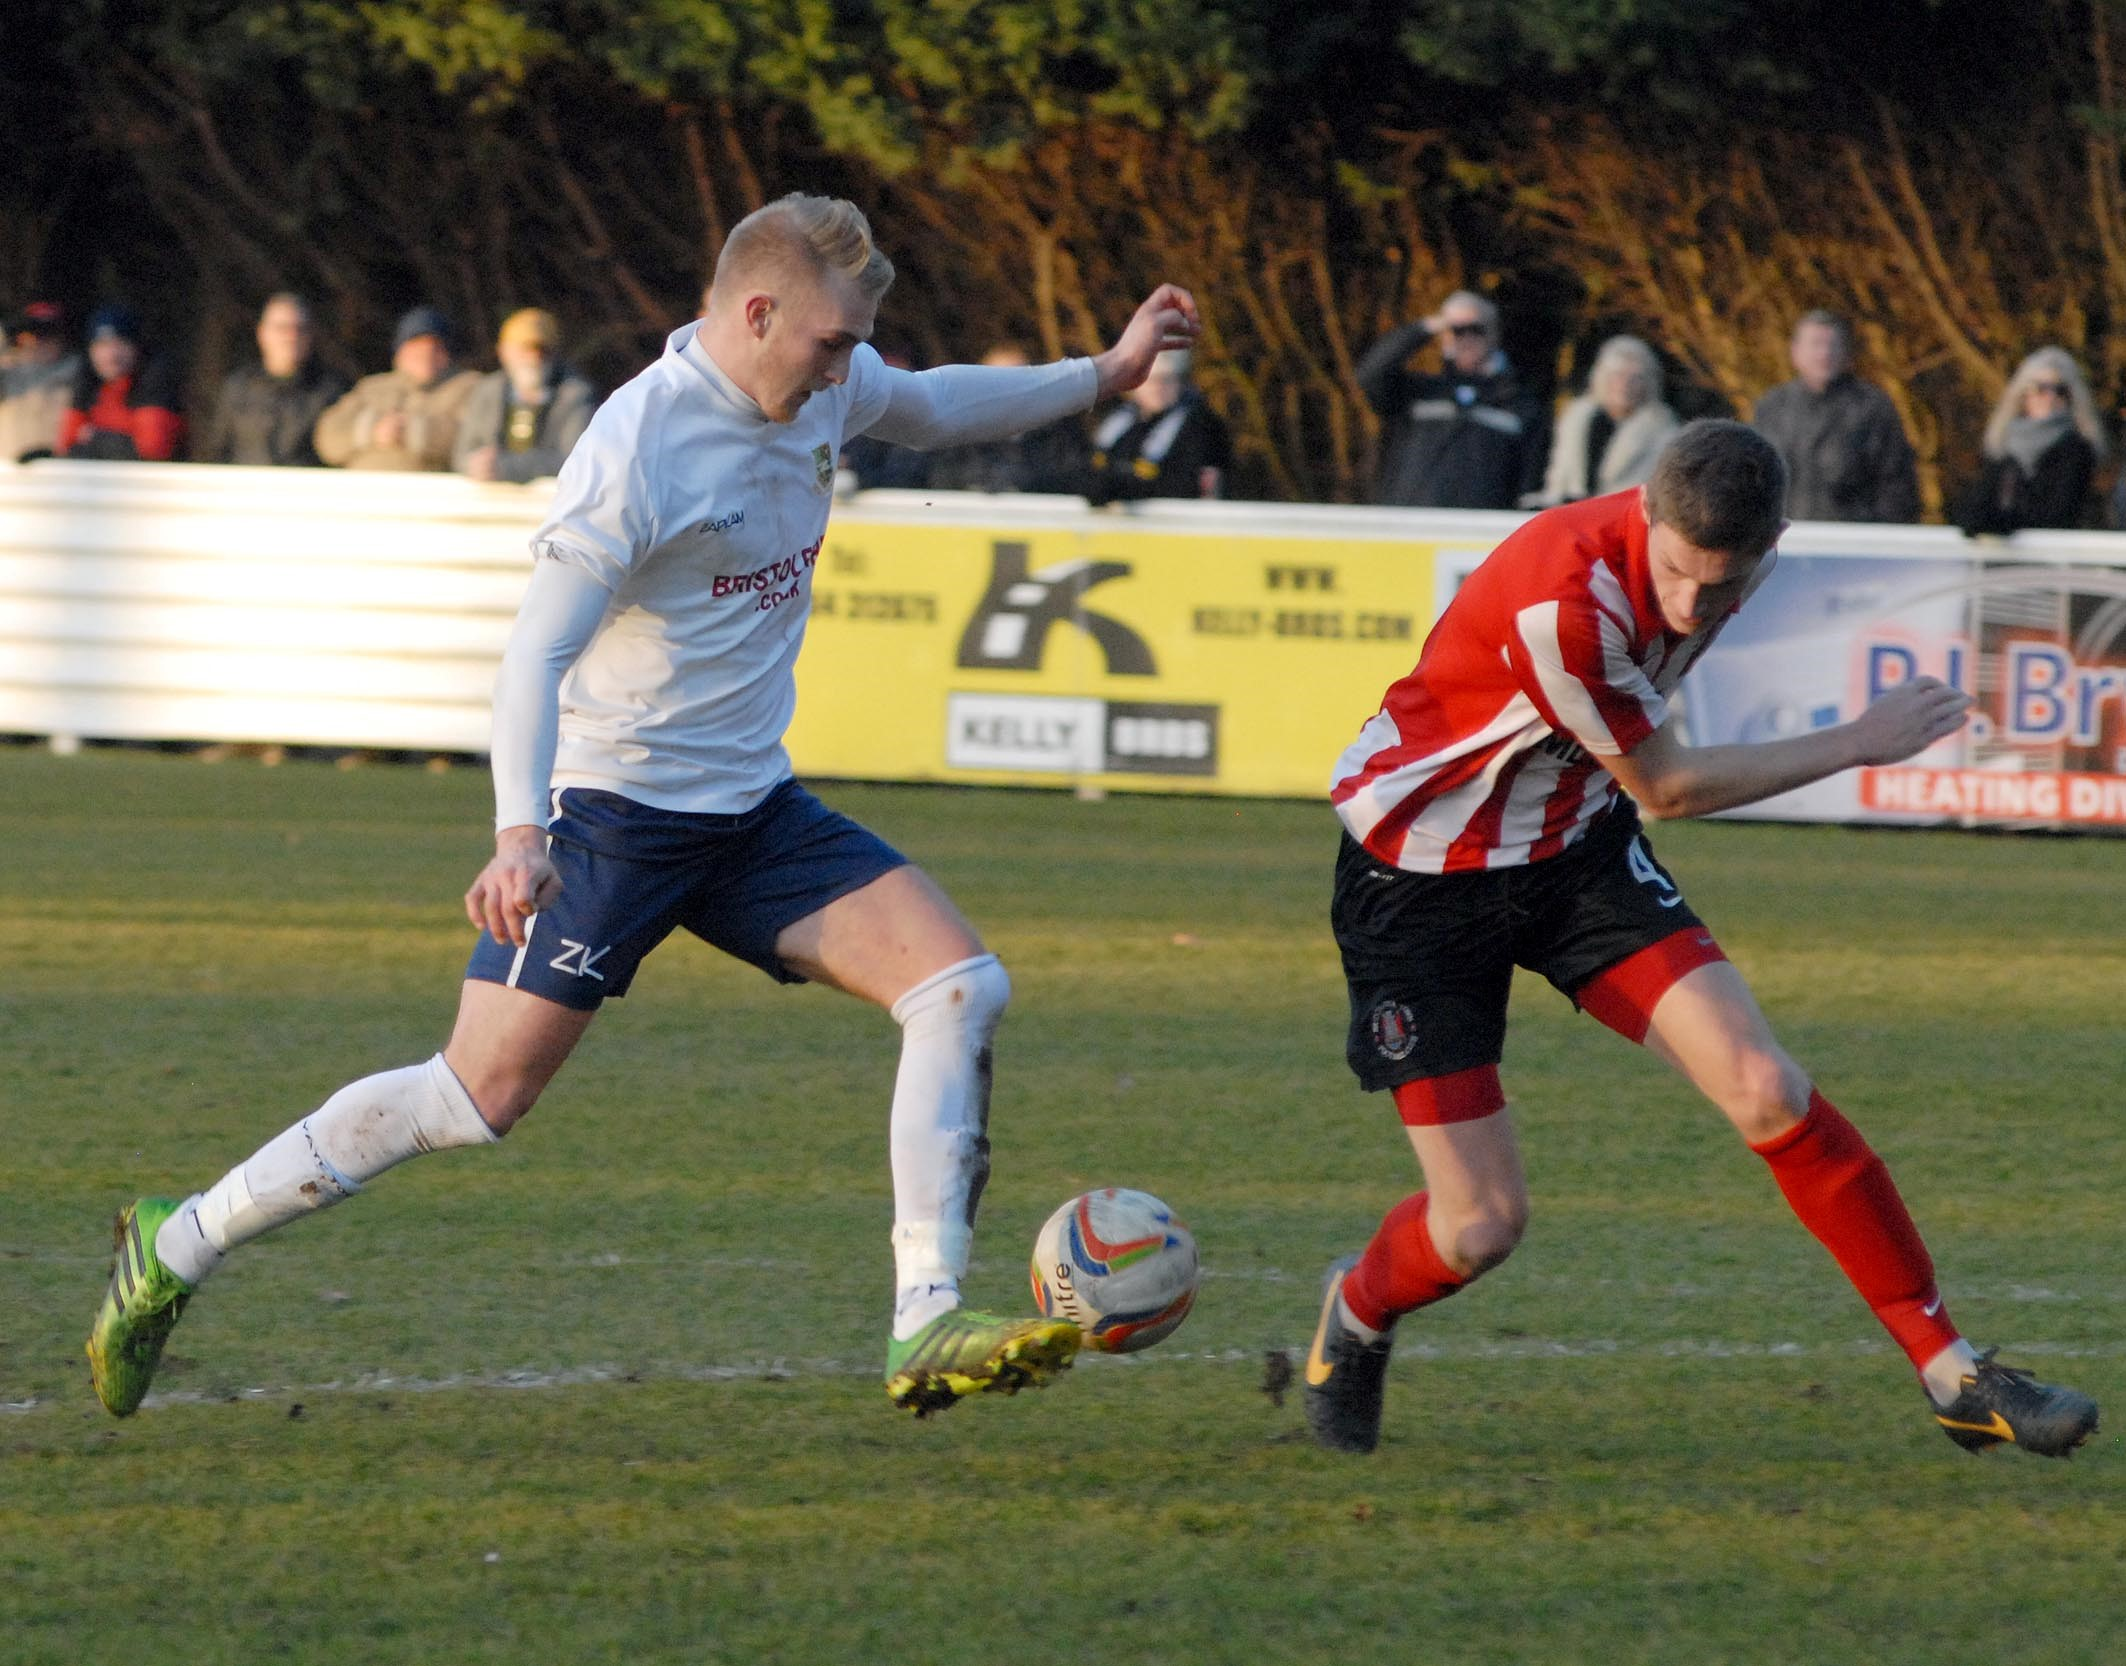 Jordan Rogers scored twice for Yate Town against Evesham United